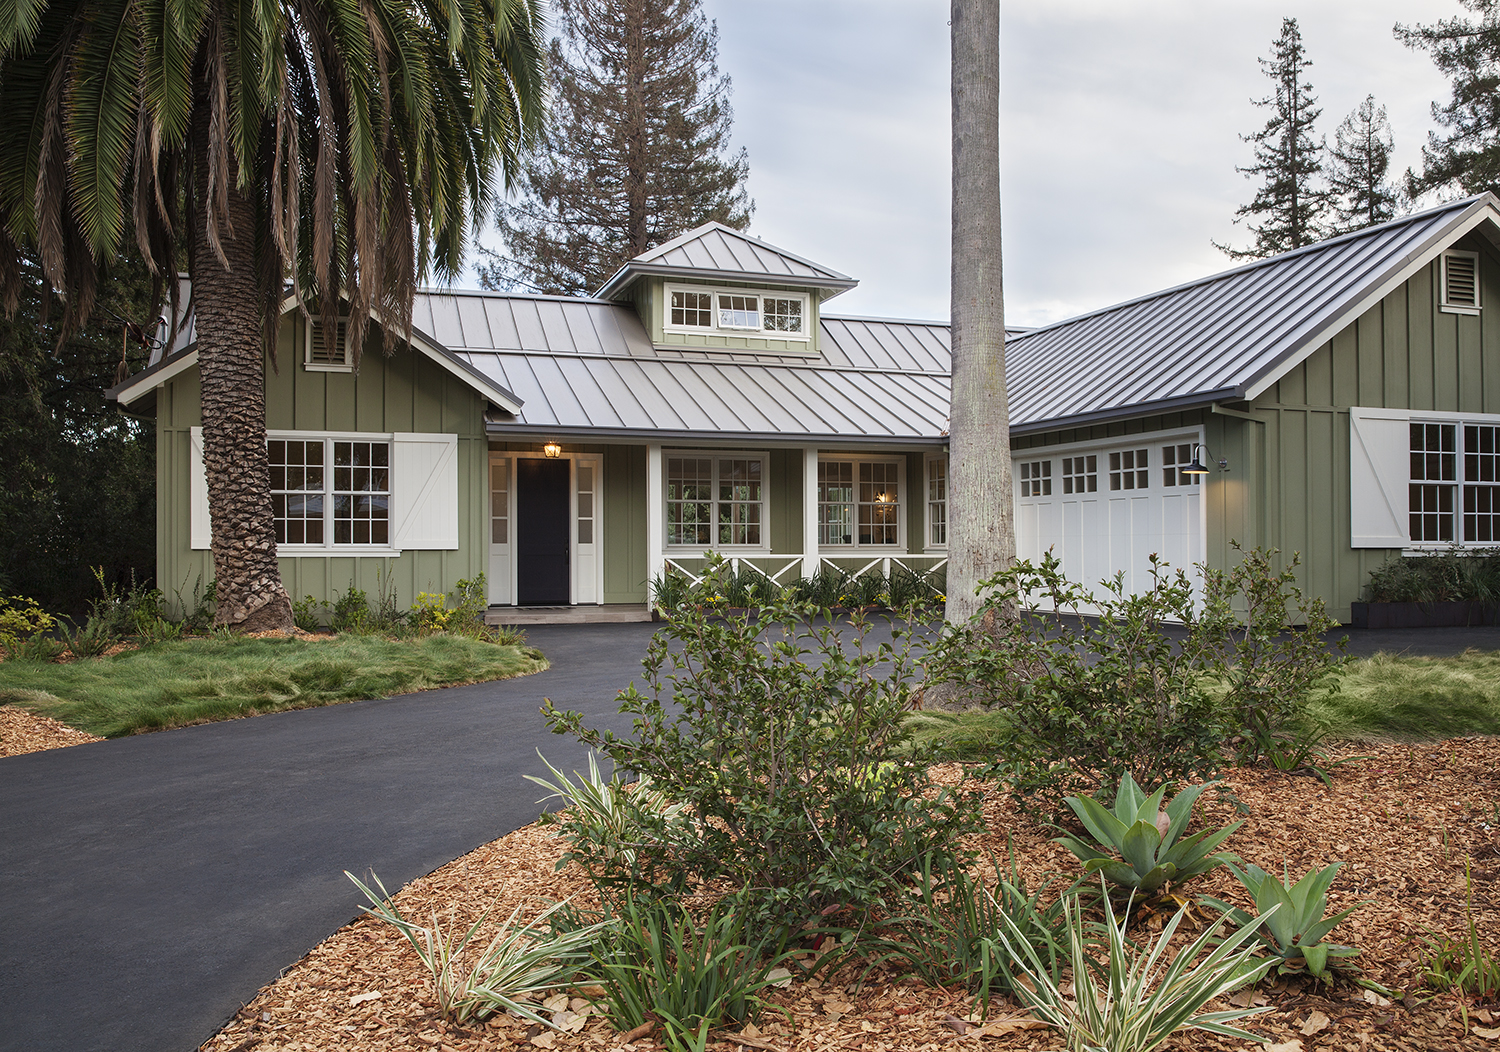 The contemporary agrarian architecture is welcoming from the front drive.